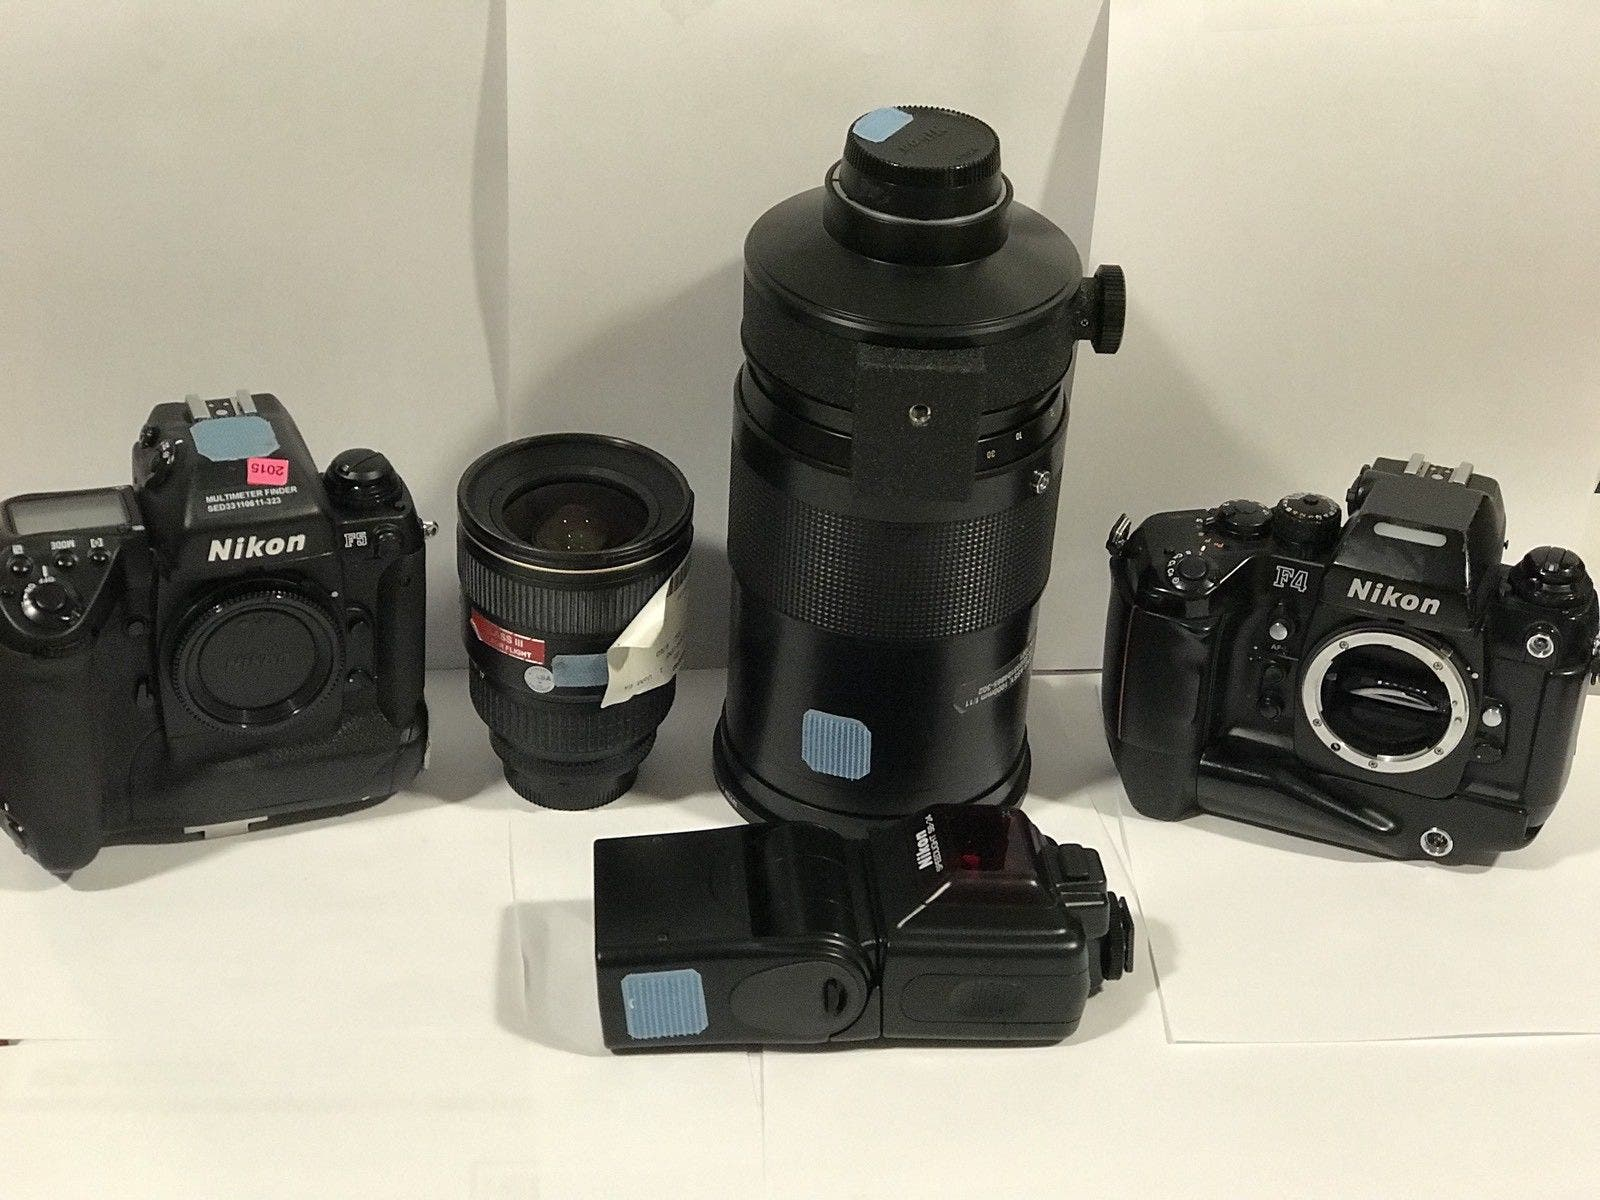 This NASA Nikon Camera and Lens Collection Is Yours for $15,000